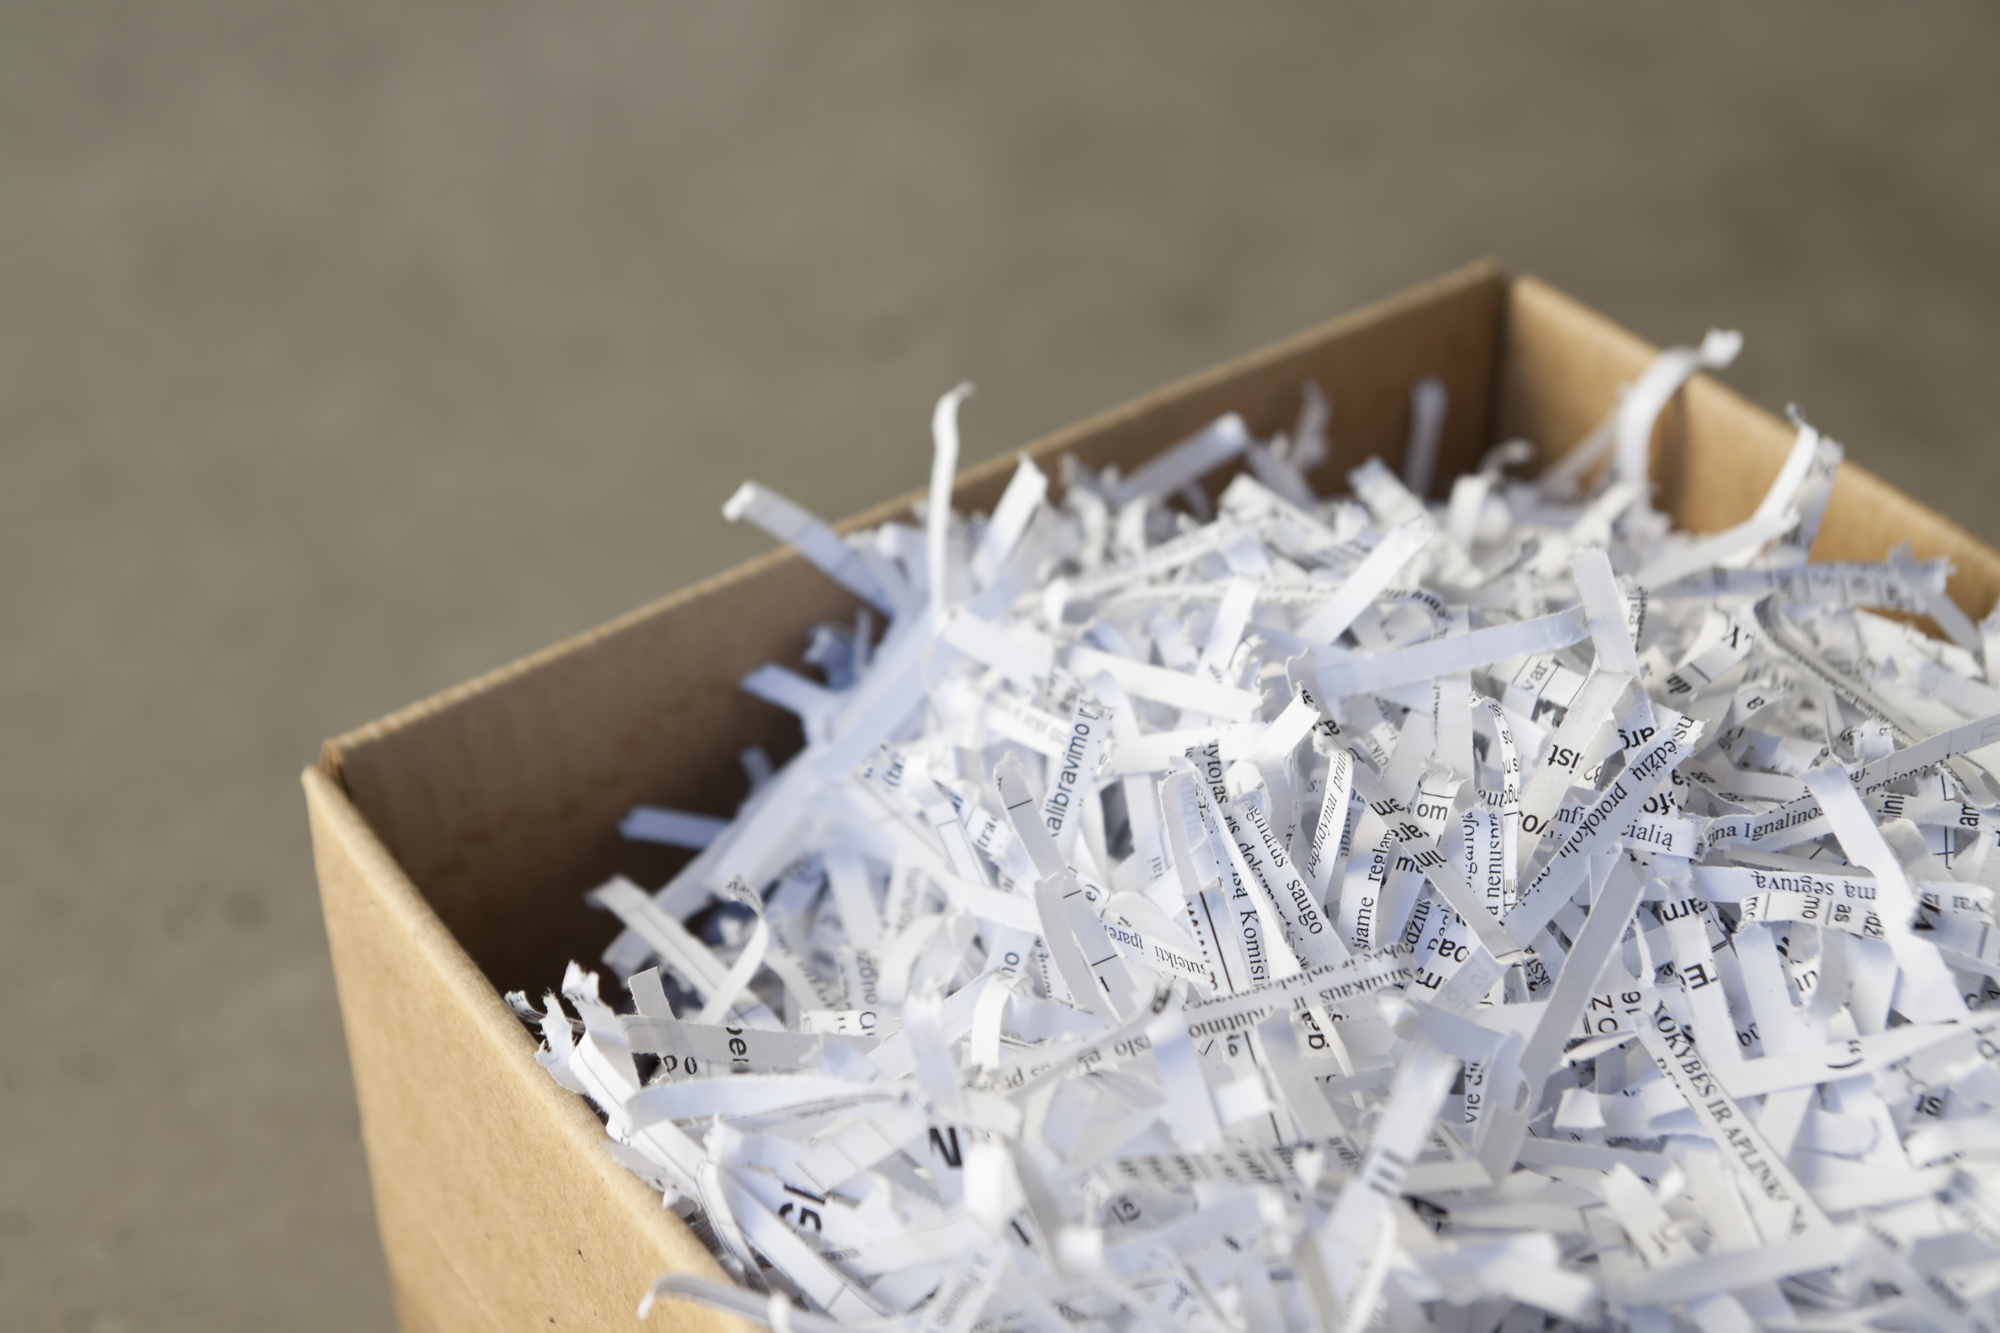 RESIDENTIAL SHREDDING NH